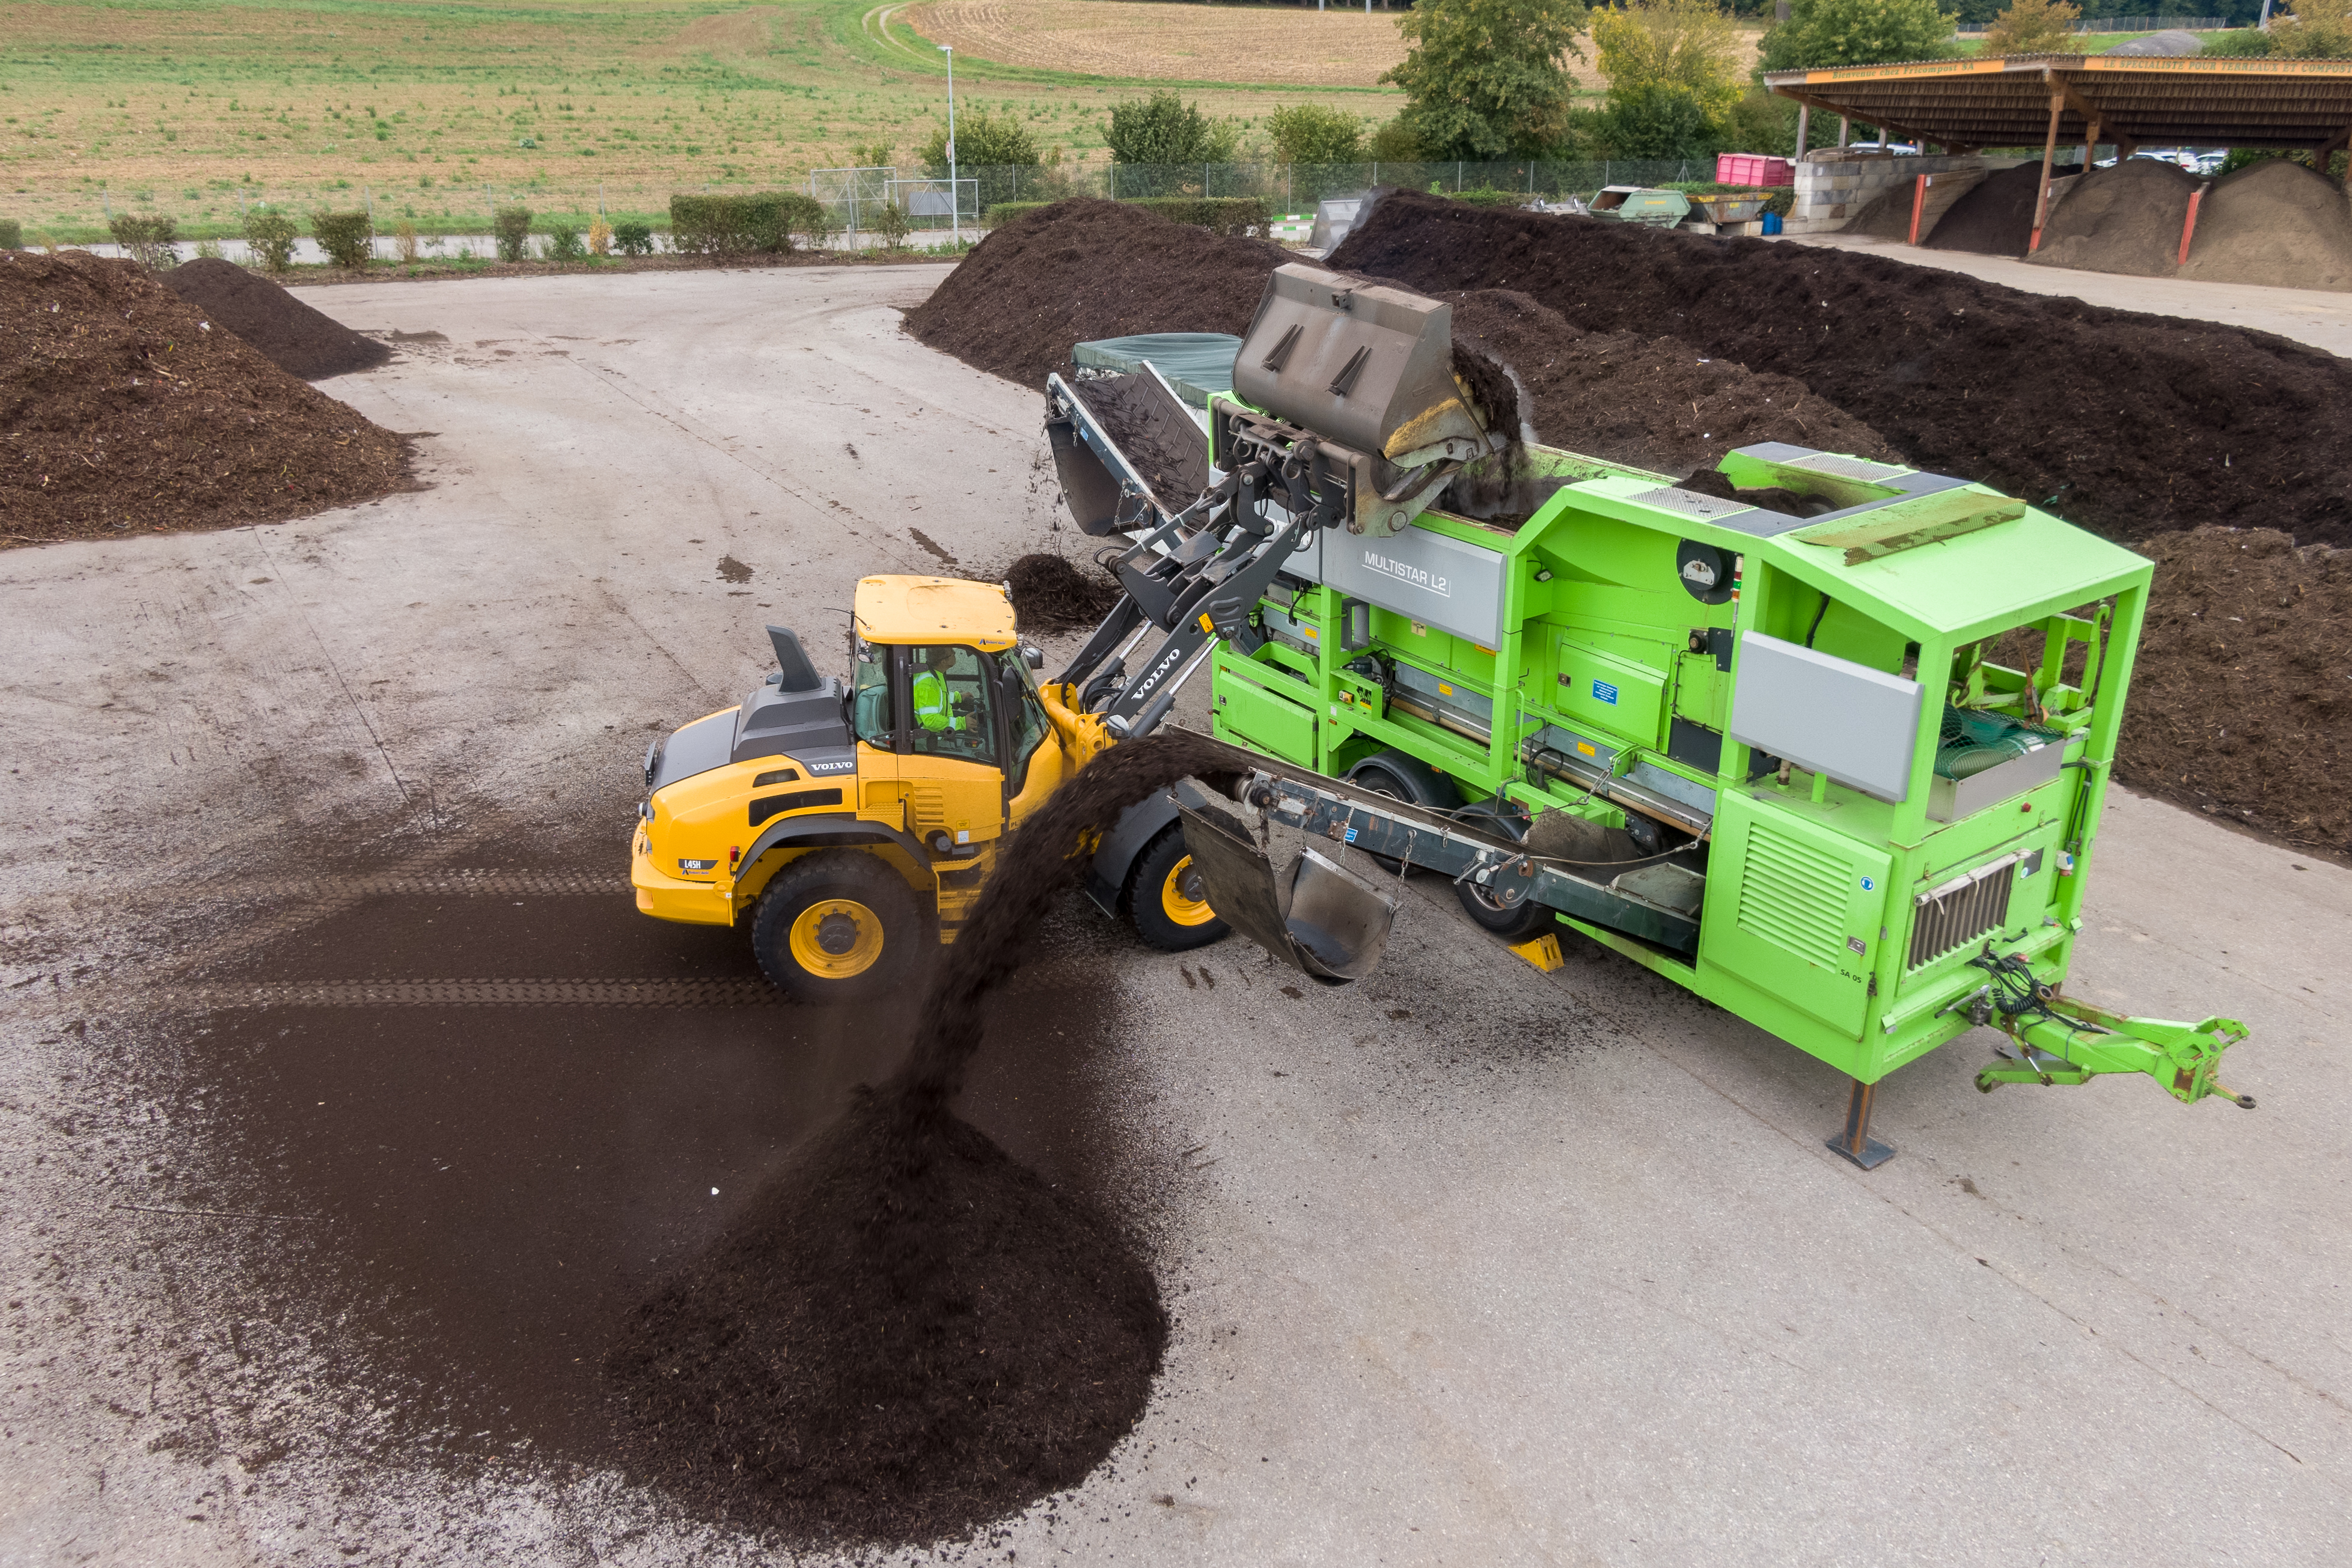 Screening compost, fertiliser and humus: Using drum and star screens, the material is processed into various grain sizes from 10, 15, 20 and 30 mm